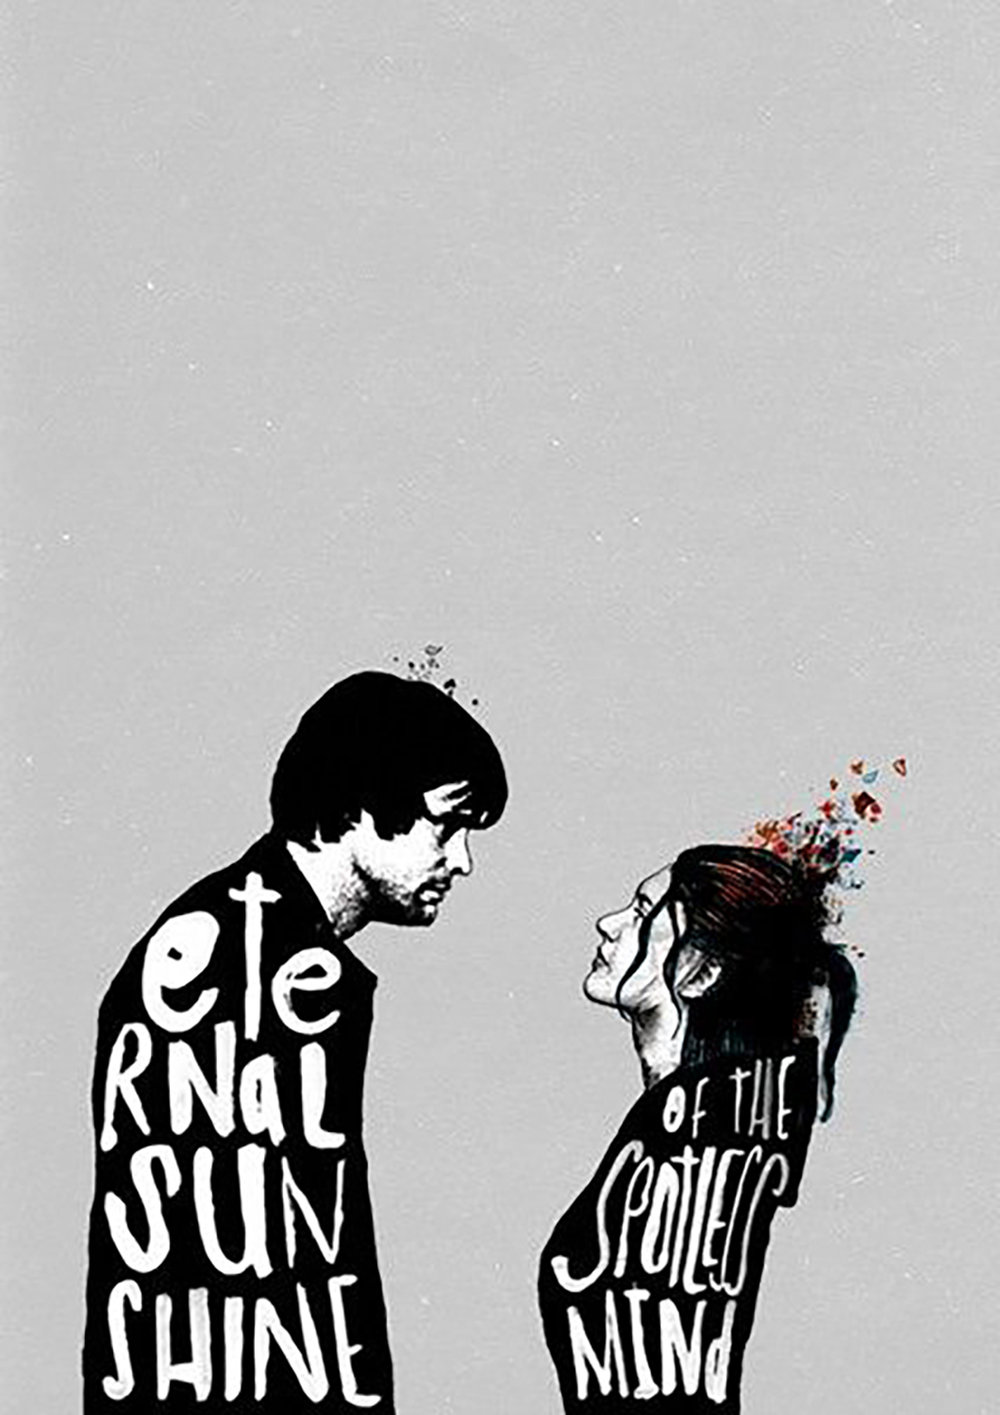 Eternal Sunshine of the Spotless Mind by Peter Strain